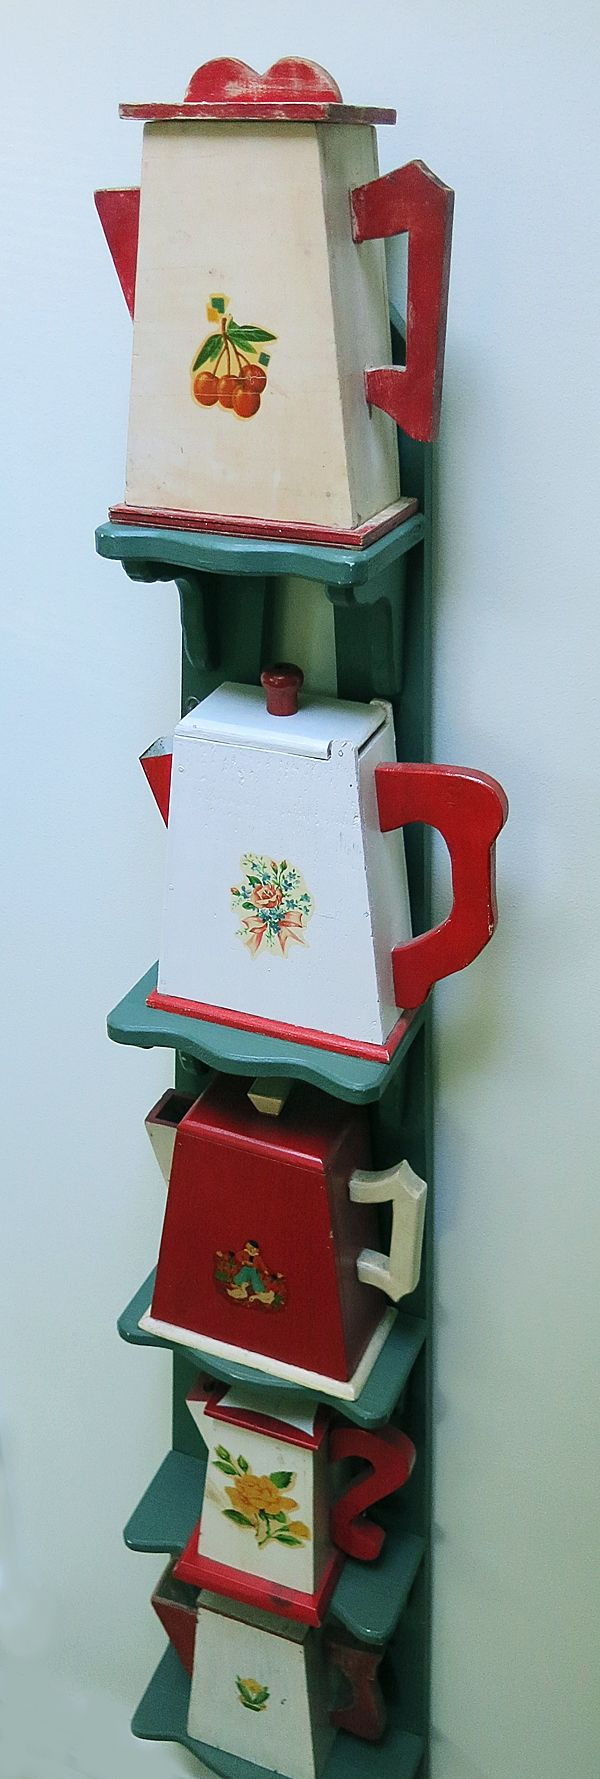 The T-Cozy ~ these are vintage laundry detergent dispensers.  Very hard to find in good condition.  Great collection!